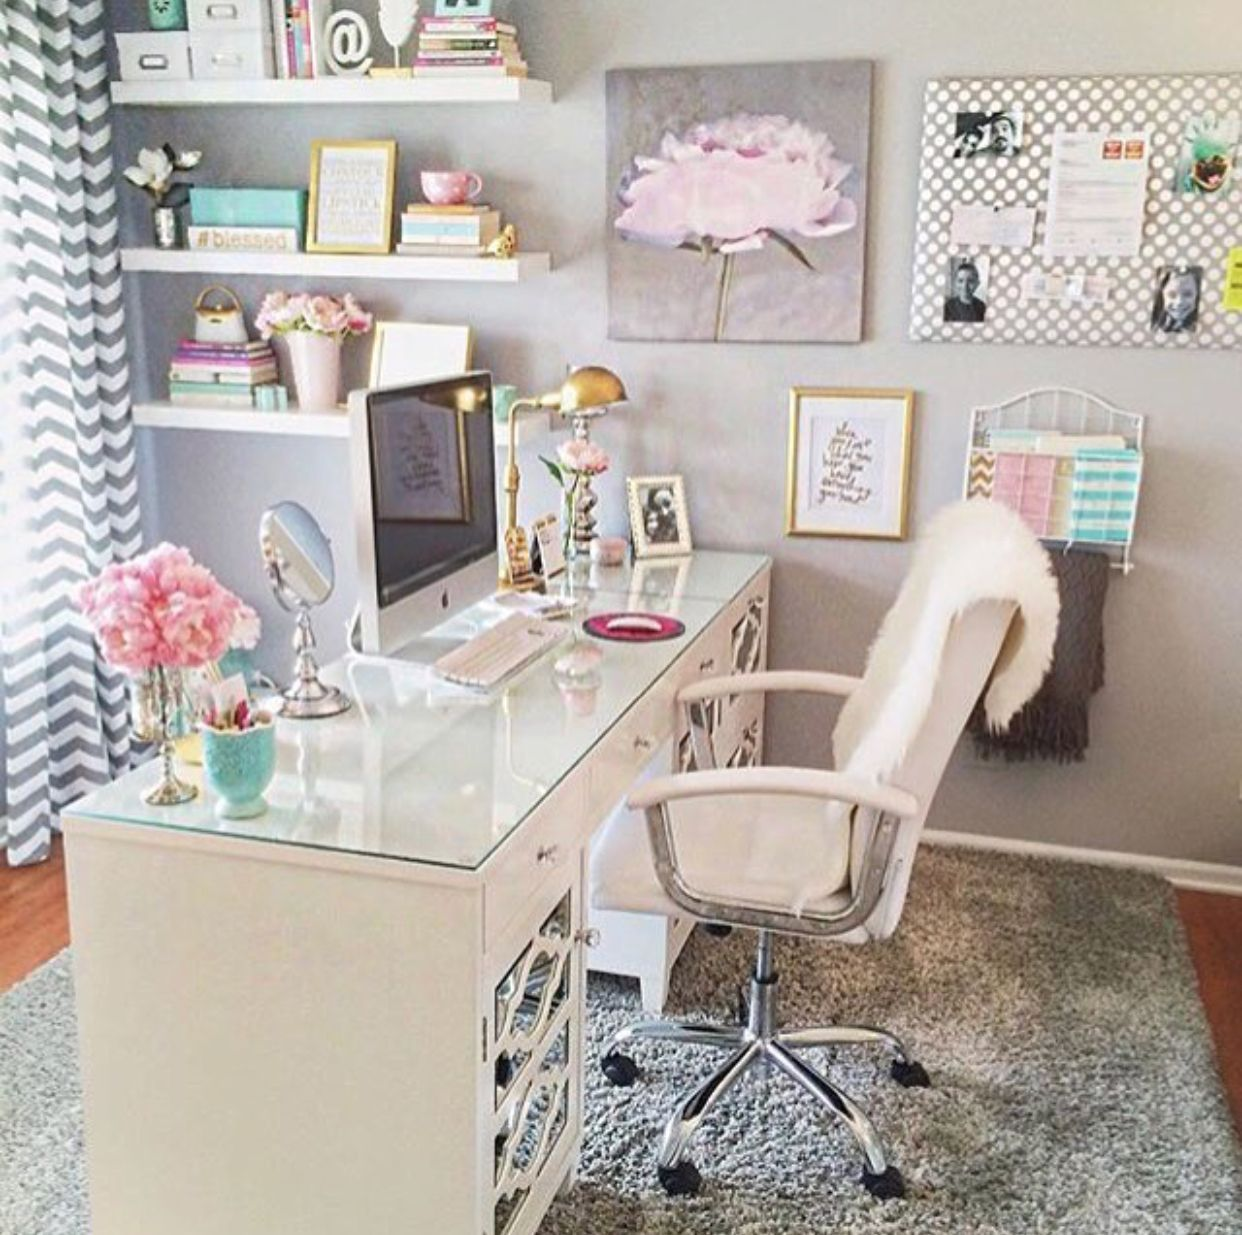 43 Ideas Office Decor For Cubicle Professional Must Popular 2019 Home Office Space Home Office Design Home Office Decor